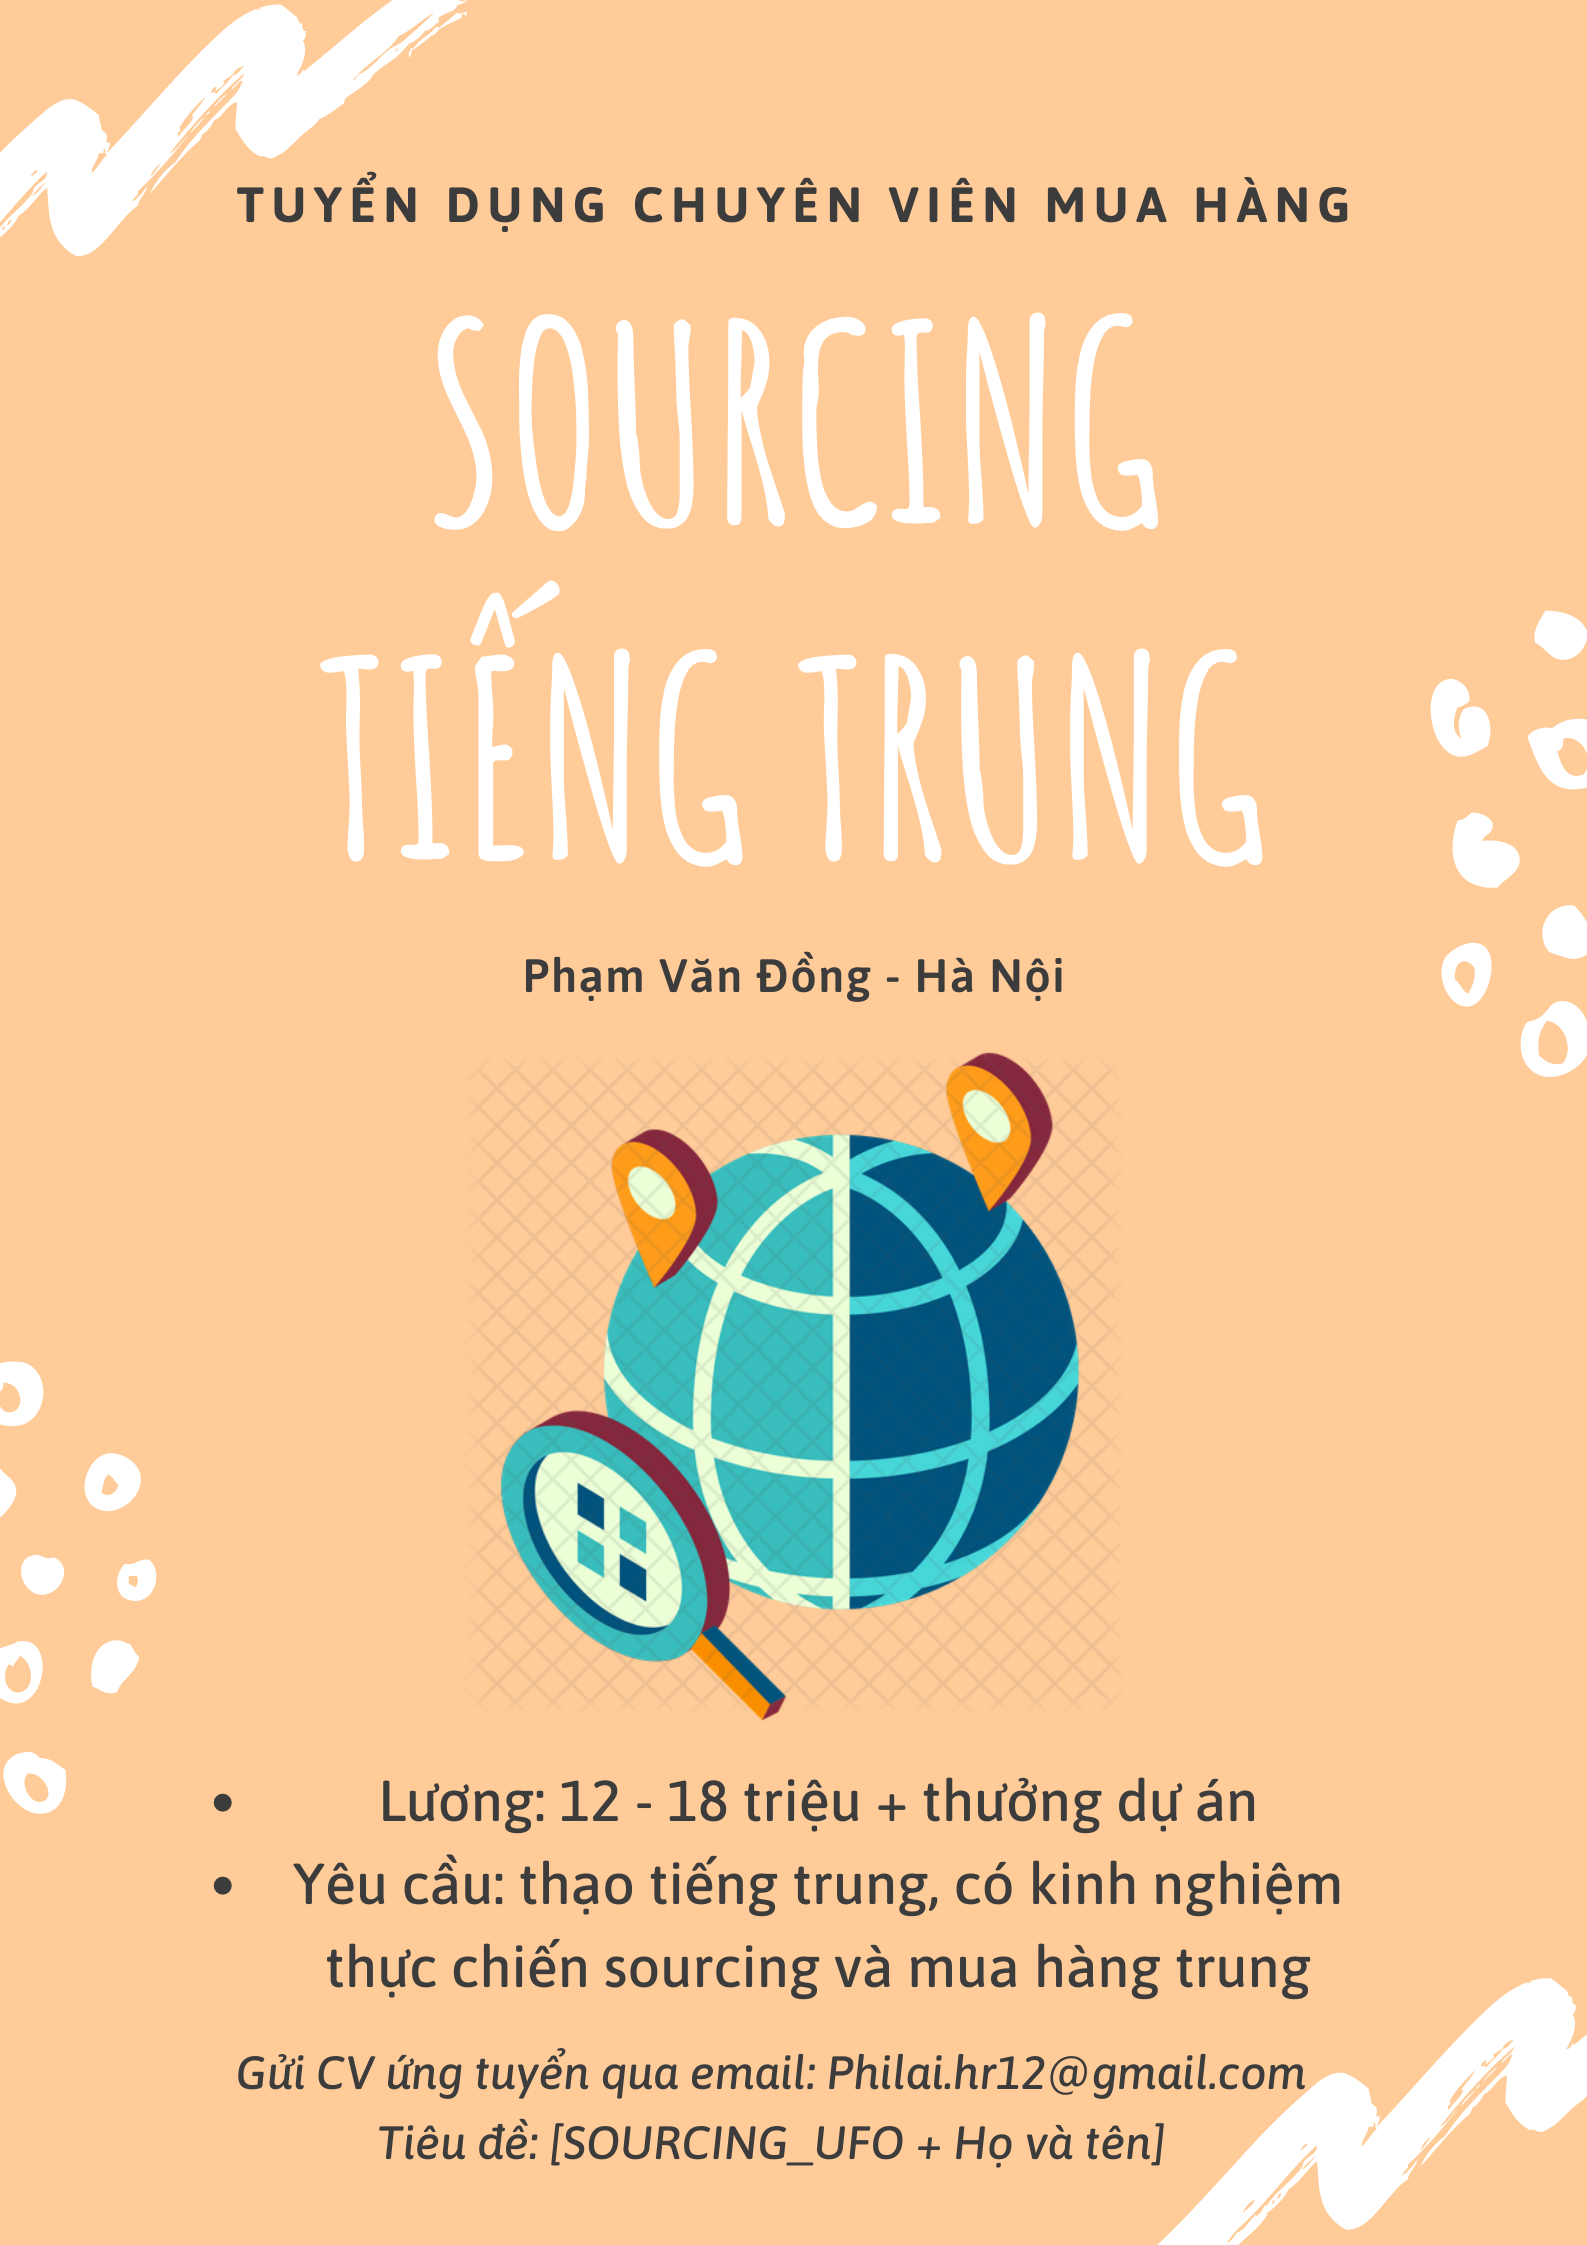 SOURCING TIẾNG TRUNG